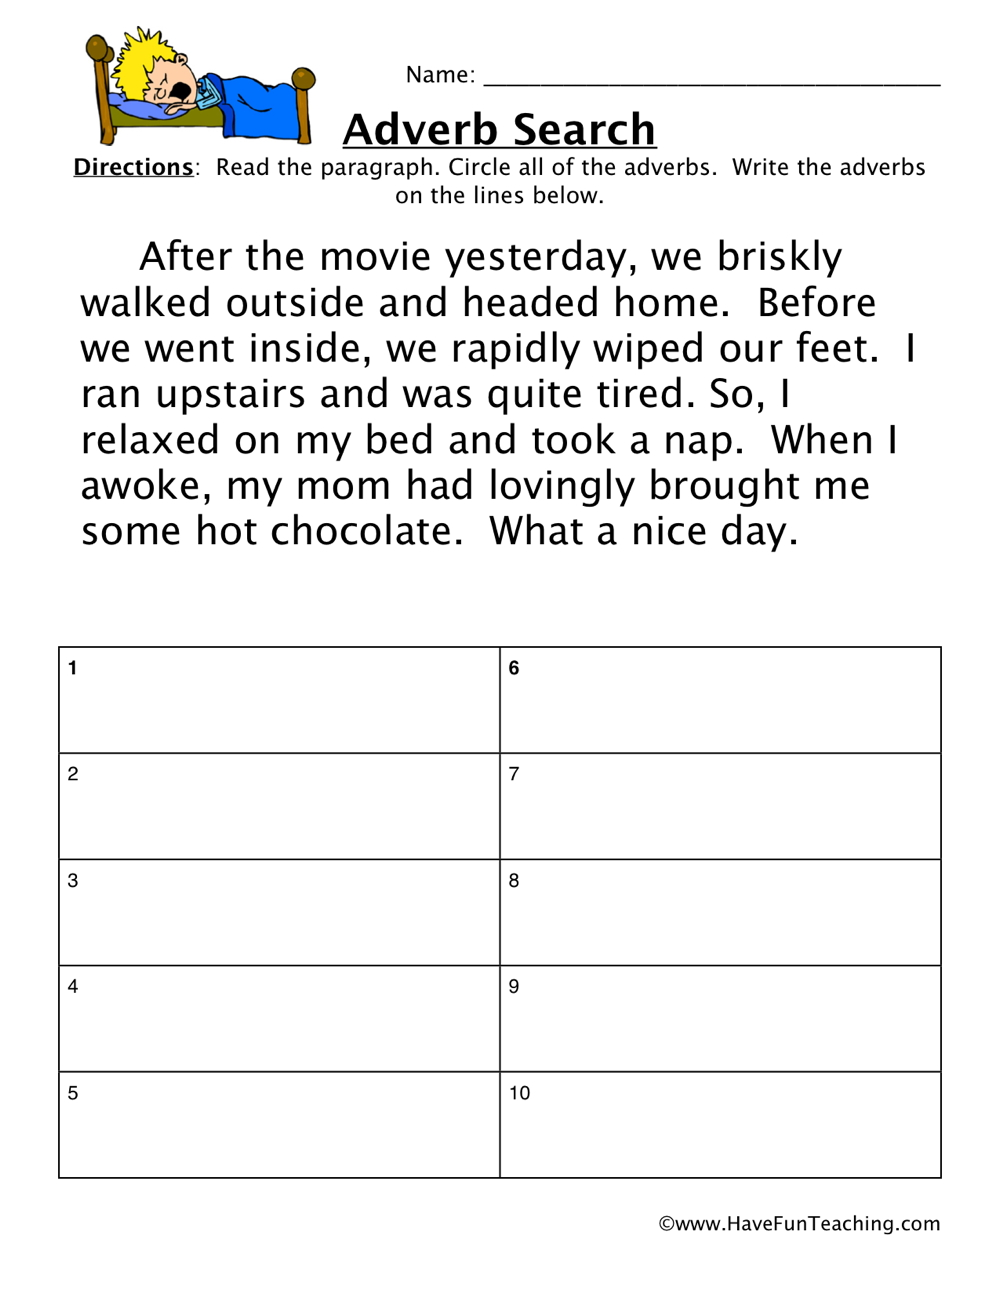 medium resolution of Adverb Movie Worksheet • Have Fun Teaching